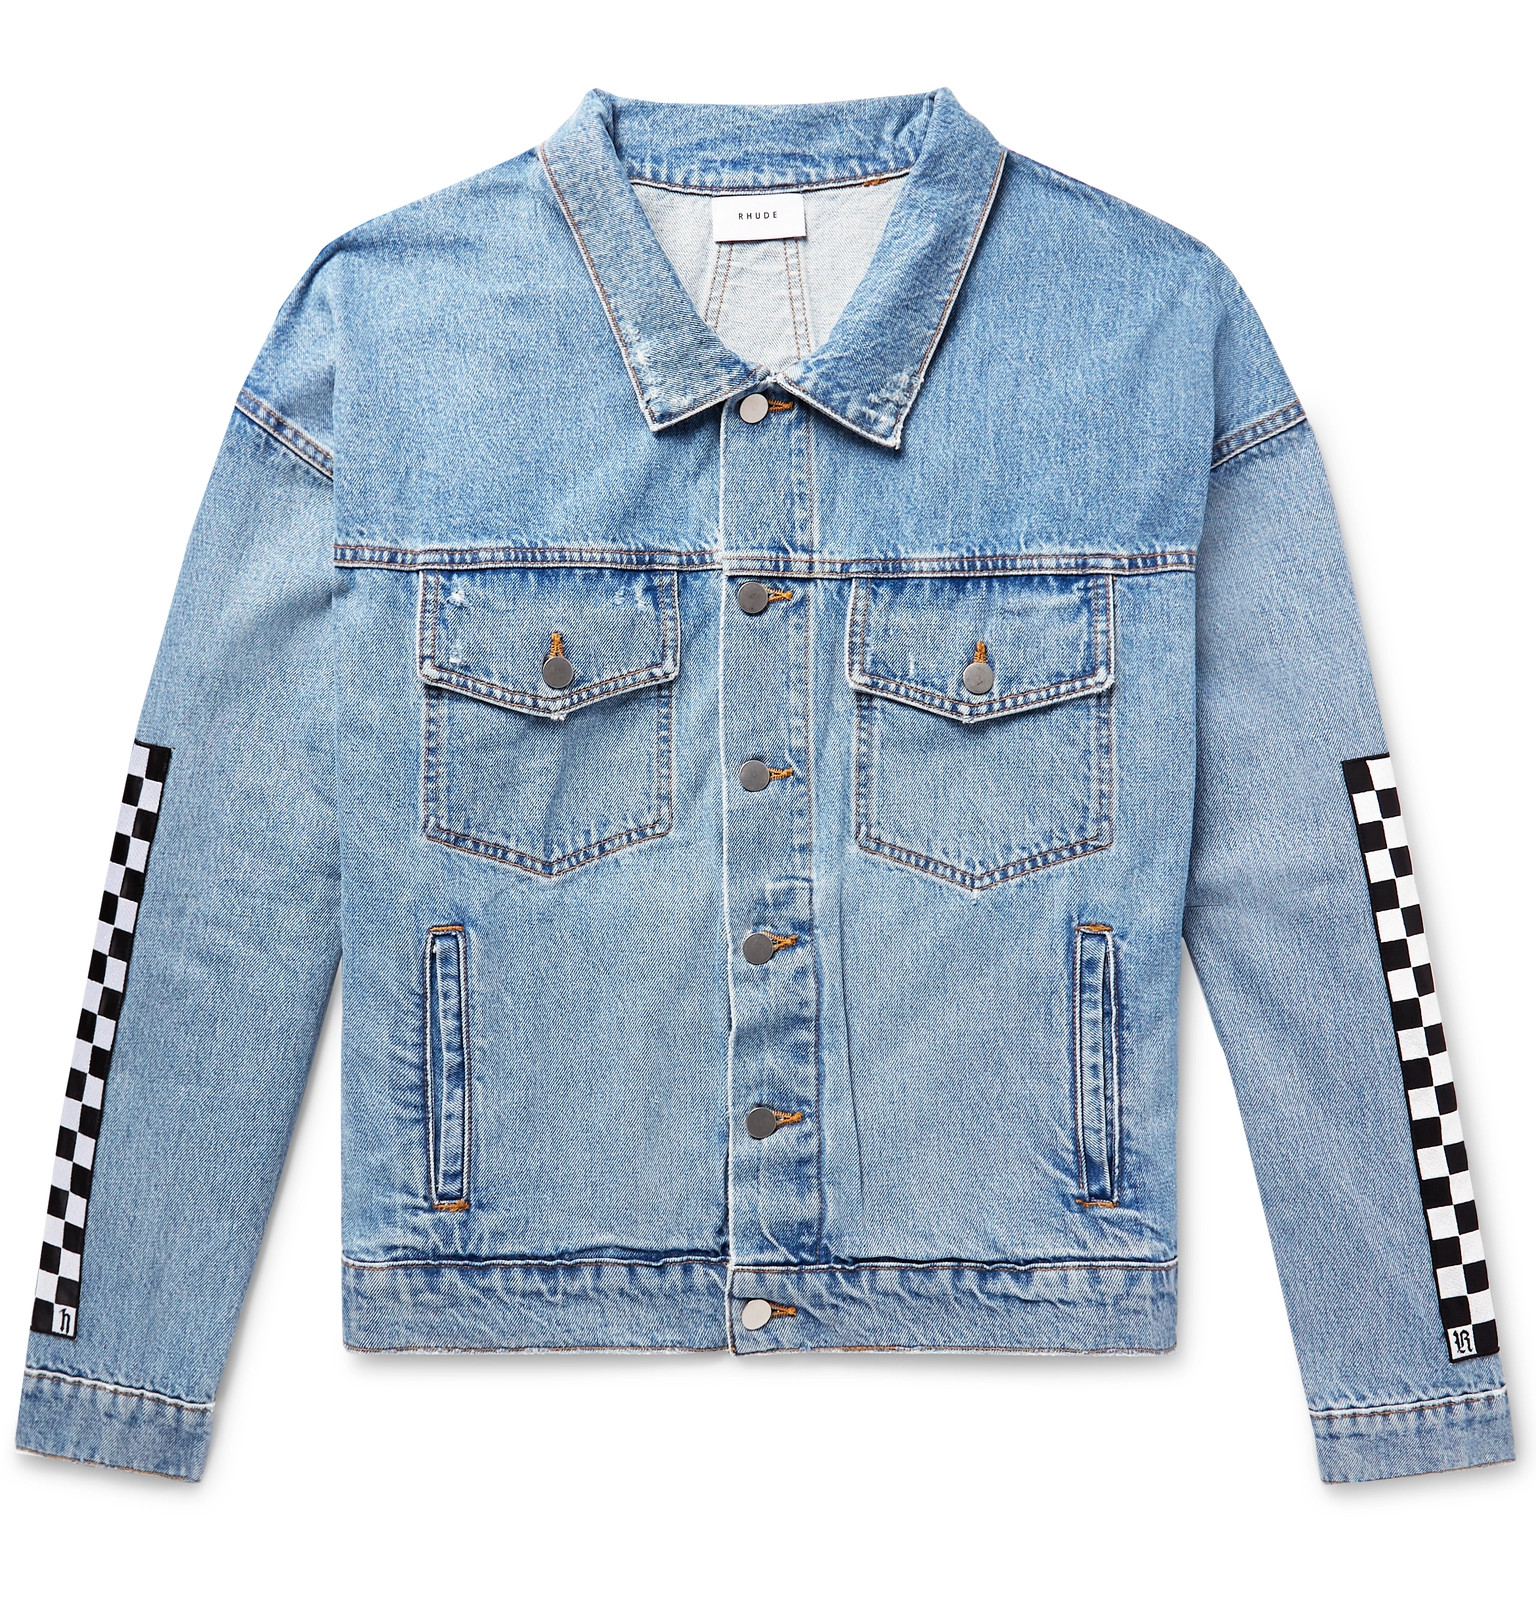 Rhude Jacket Denim Levi's Appliquéd Trucker gZfUO6wg